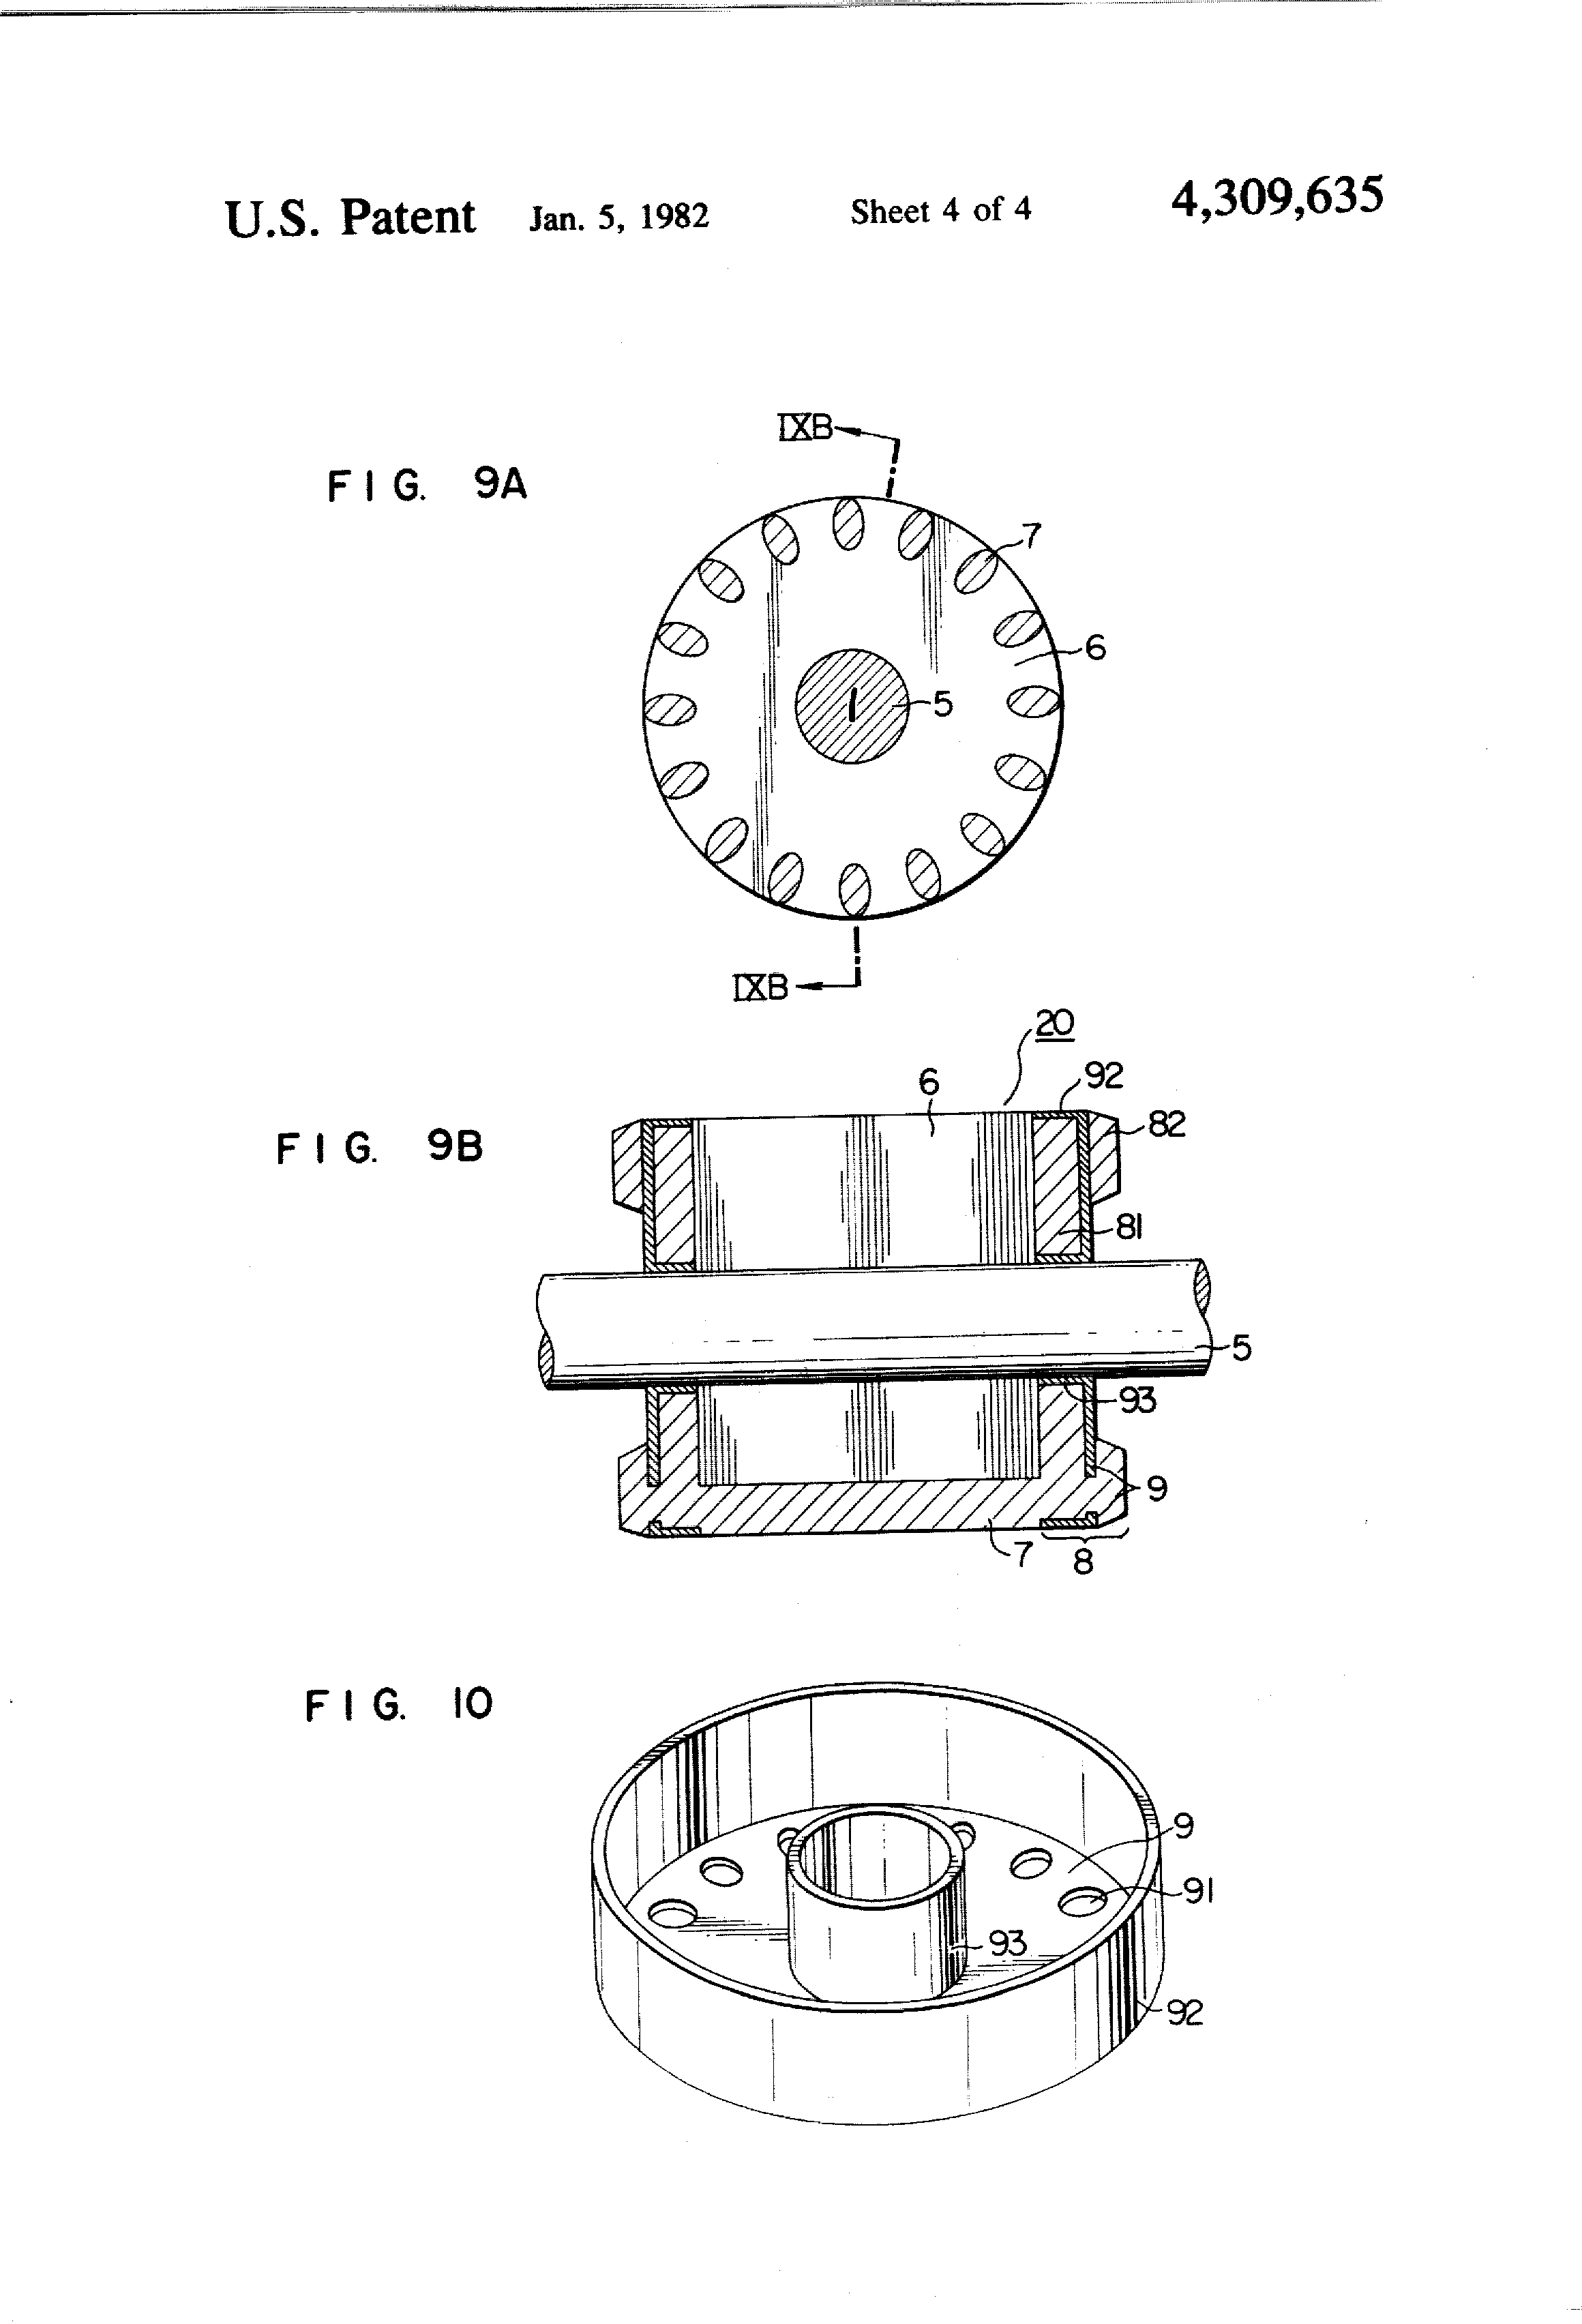 Patent Us4309635 Squirrel Cage Rotor Having End Rings Of Double Way The Motor Operates Induction With A Was Invented By Drawing